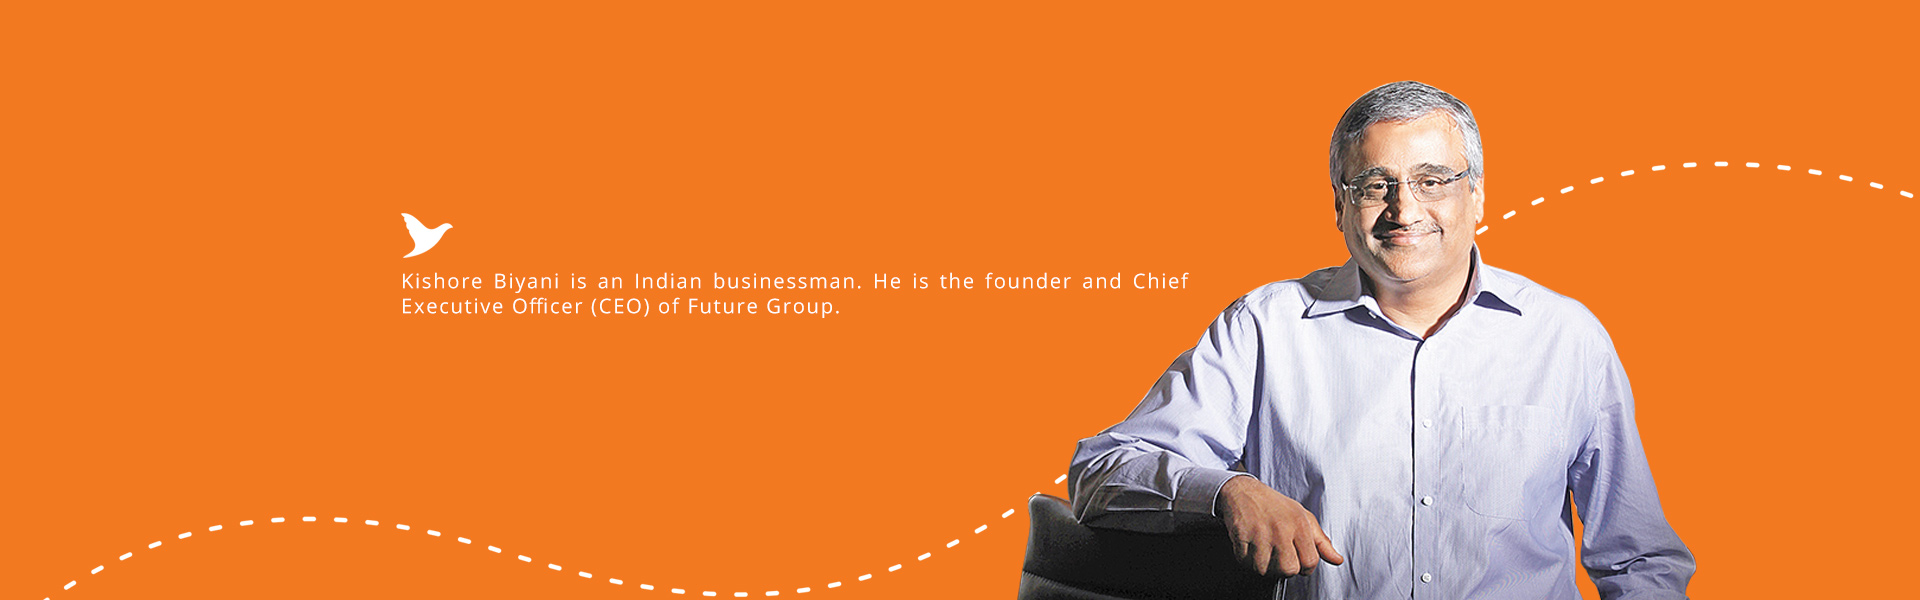 Kishore Biyani Kishore Biyani is an Indian businessman. He is the founder and Chief Executive Officer (CEO) of Future Group.